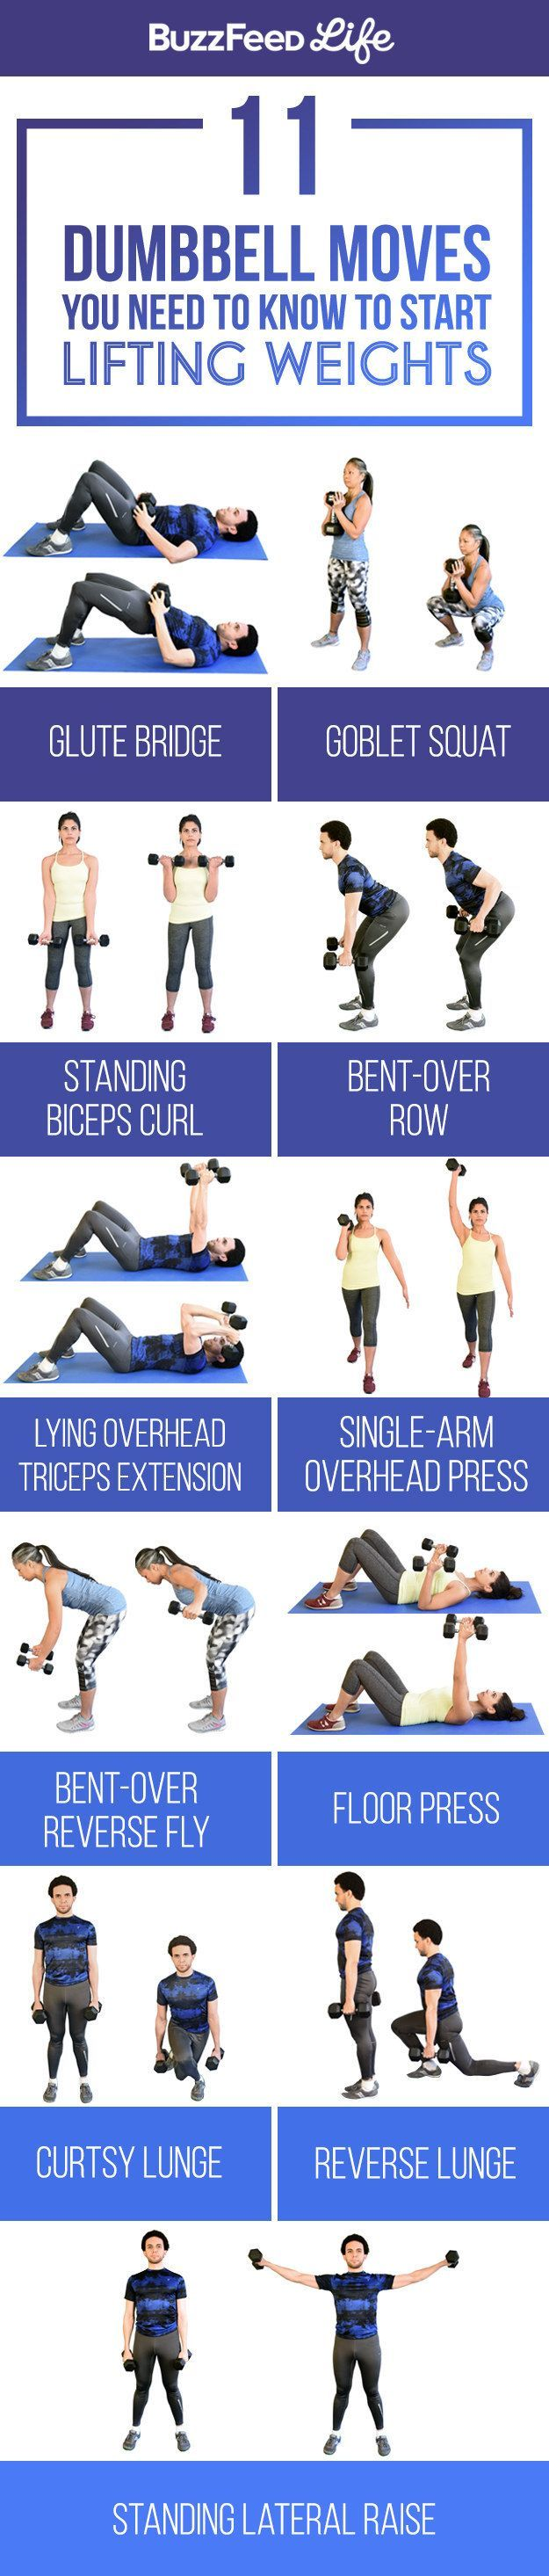 11 Dumbbell Moves You Should Know To Start Lifting Weights #workouts #weights #fitnesstipsandtricks